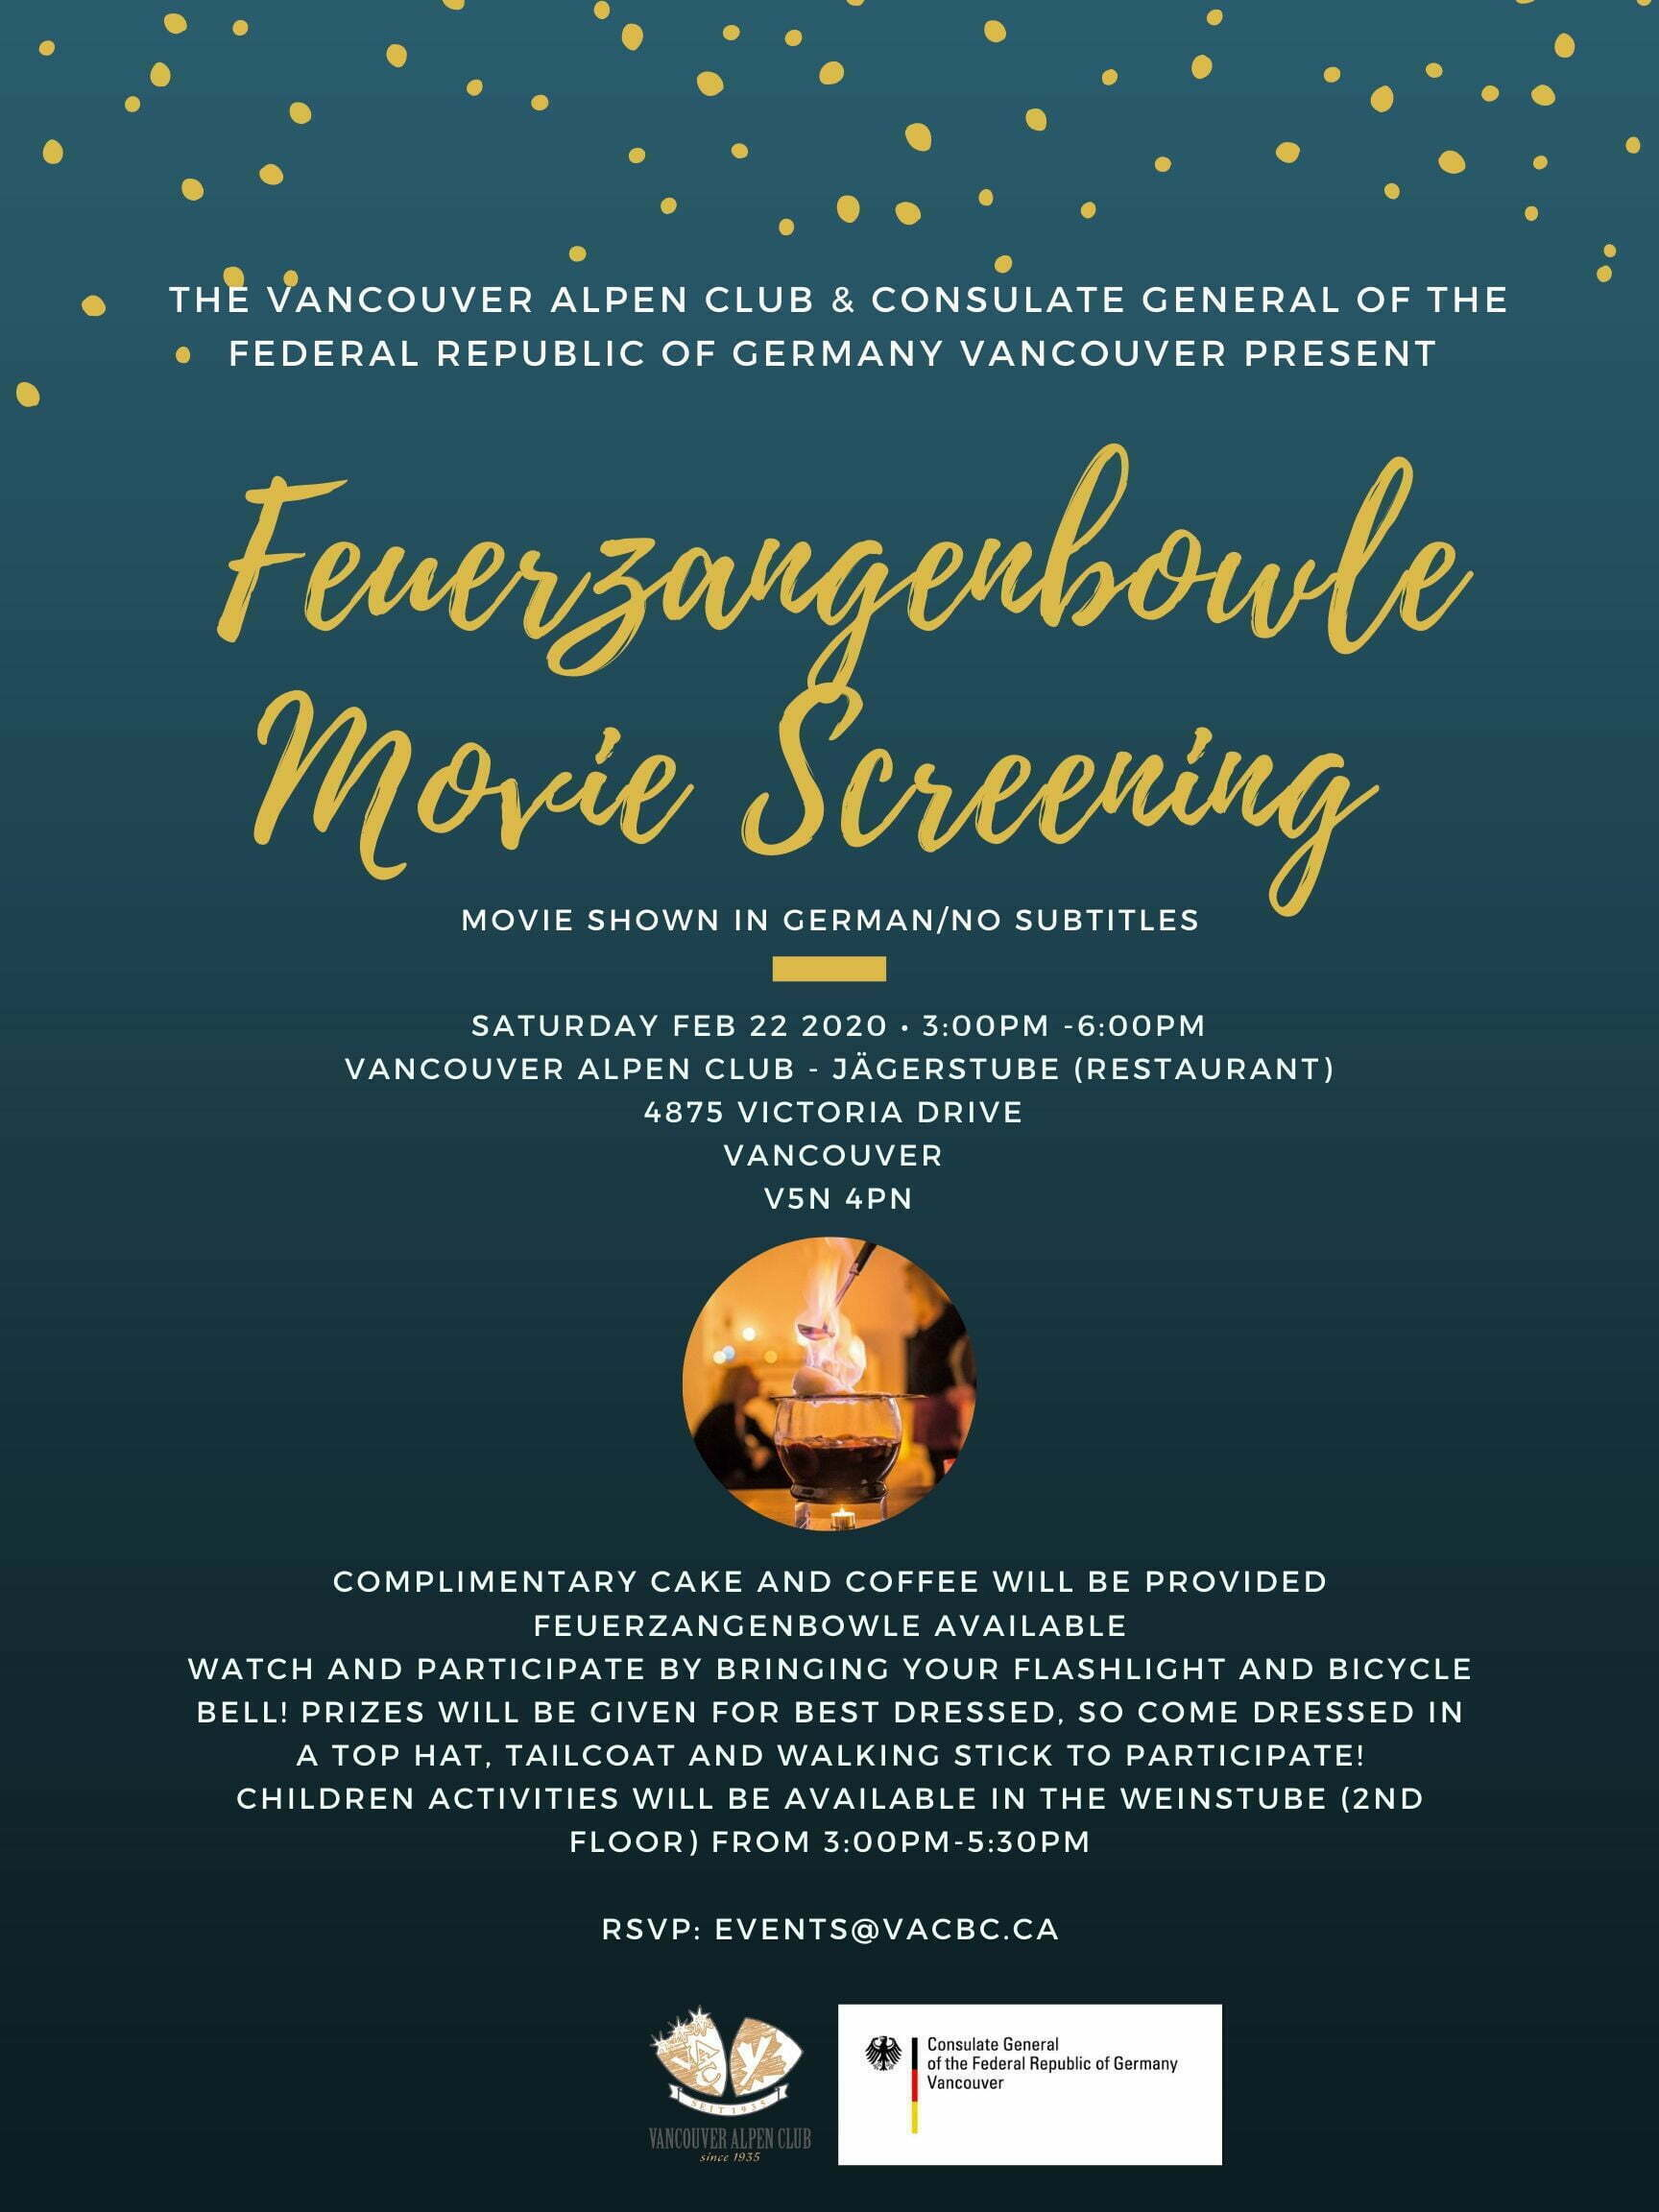 Feurzangenbowle Movie Screening